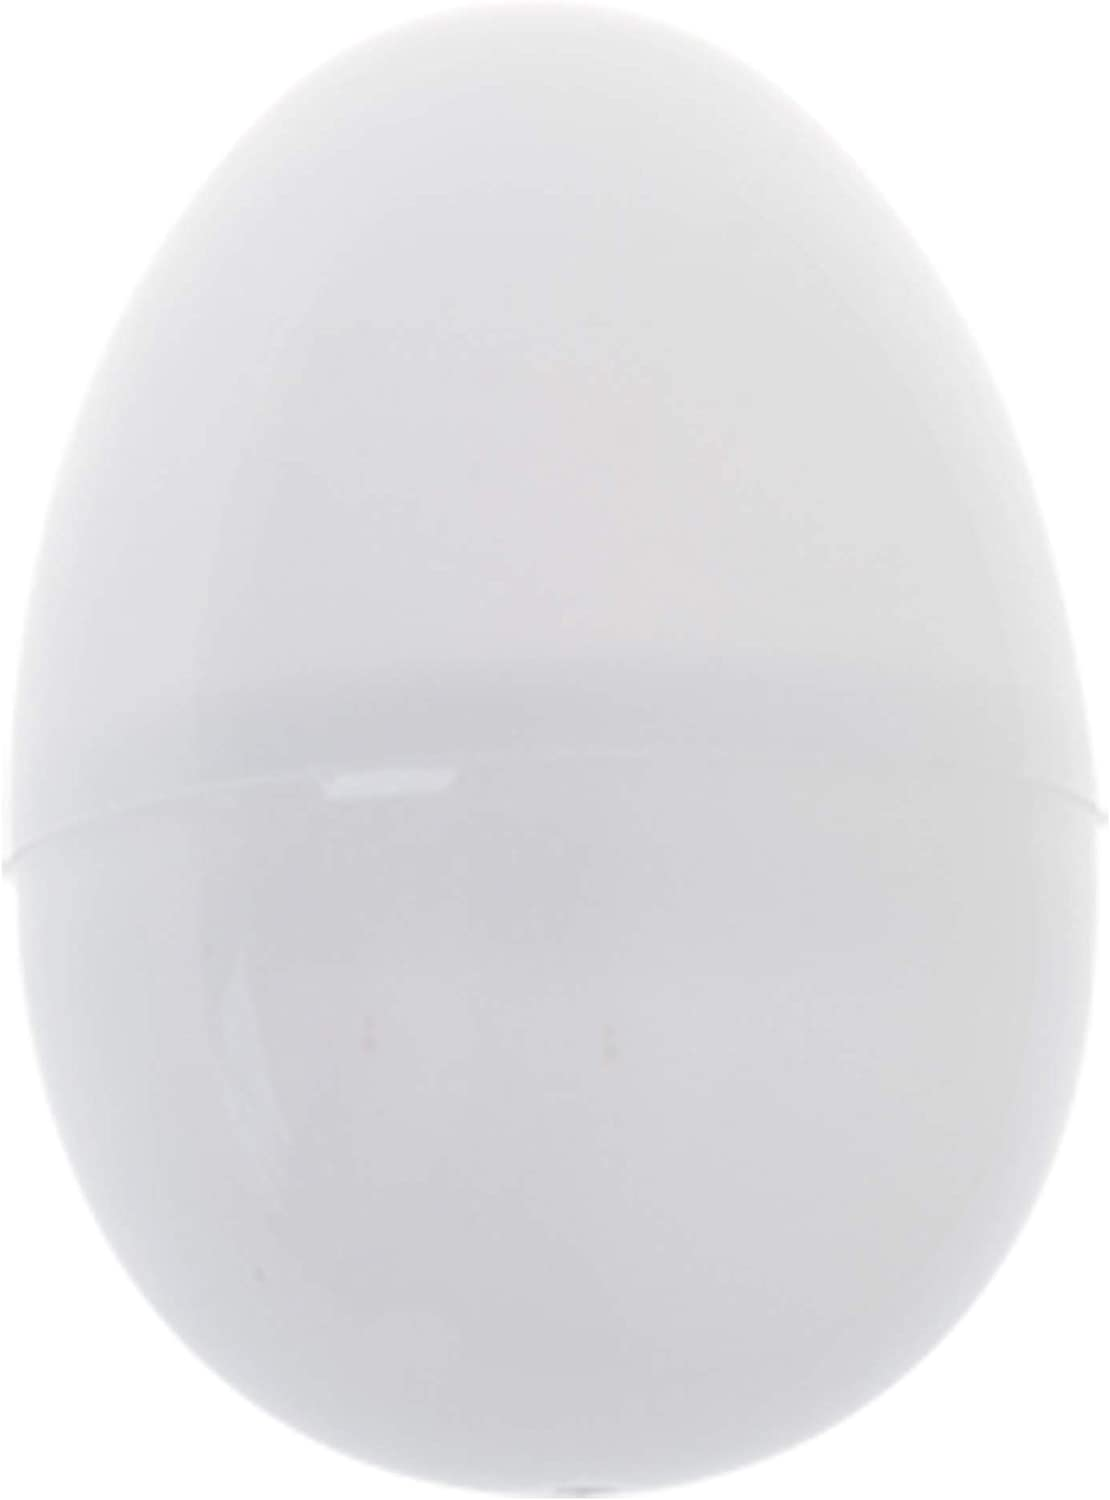 "BLUECELL 25pcs 2.25"" Blank White Plastic DIY Easter Eggs: Toys & Games"